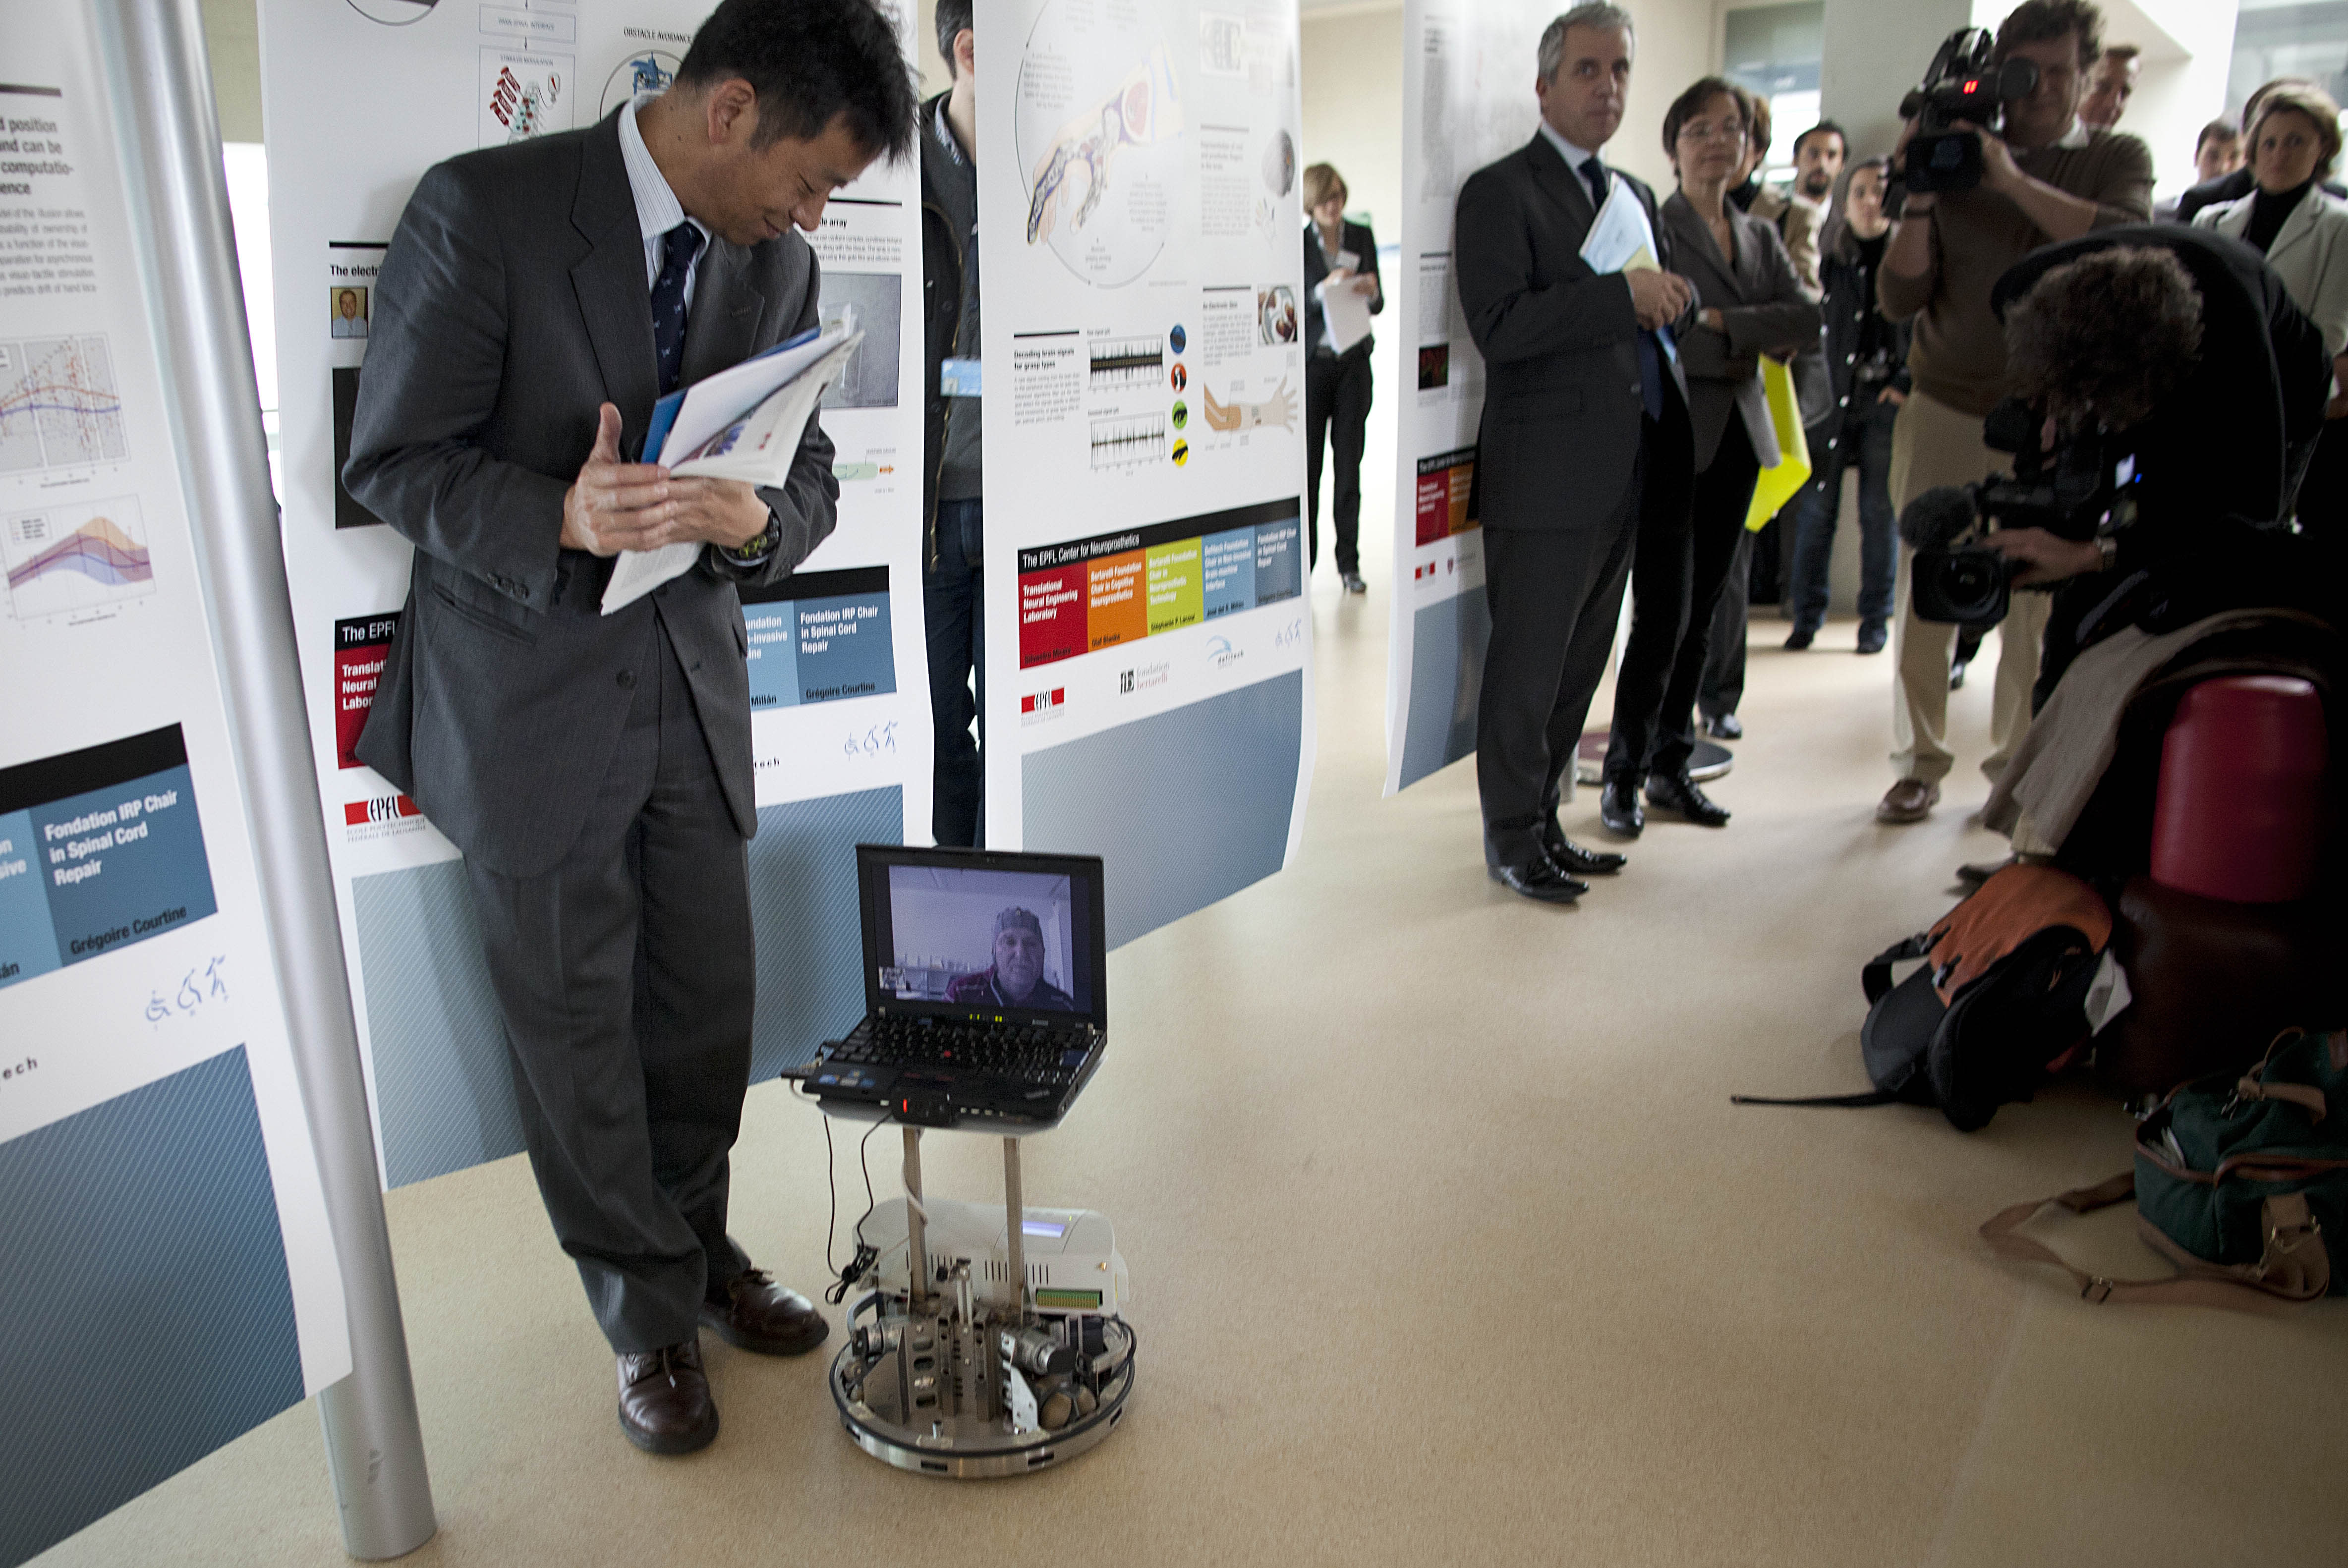 A spectator moves out of the way as Mark-Andre Duc, seen on the computer screen, directs a robot at Switzerland's Federal Institute of Technology in Lausanne, Switzerland, Tuesday, April 24, 2012. From the hospital 100 kilometers (62 miles) away, Duc imagined lifting his fingers to direct a robot. Swiss scientists demonstrated with this test how a partially paralyzed person can control a robot using brain signals alone. (AP Photo/Anja Niedringhaus)